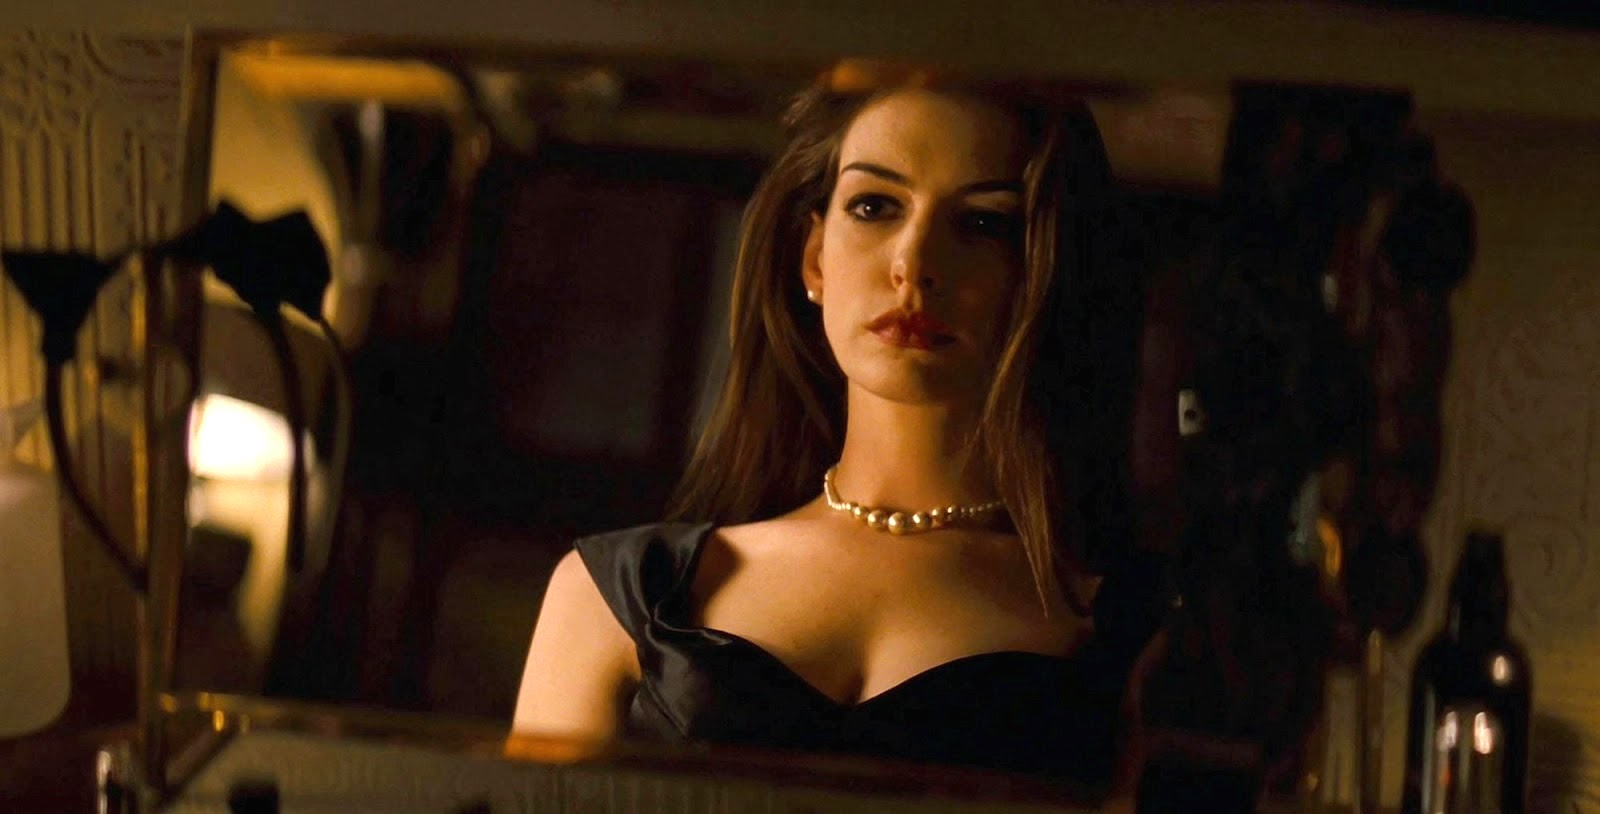 Anne-Hathaway-Catwoman-The-Dark-Knight-Rises-6